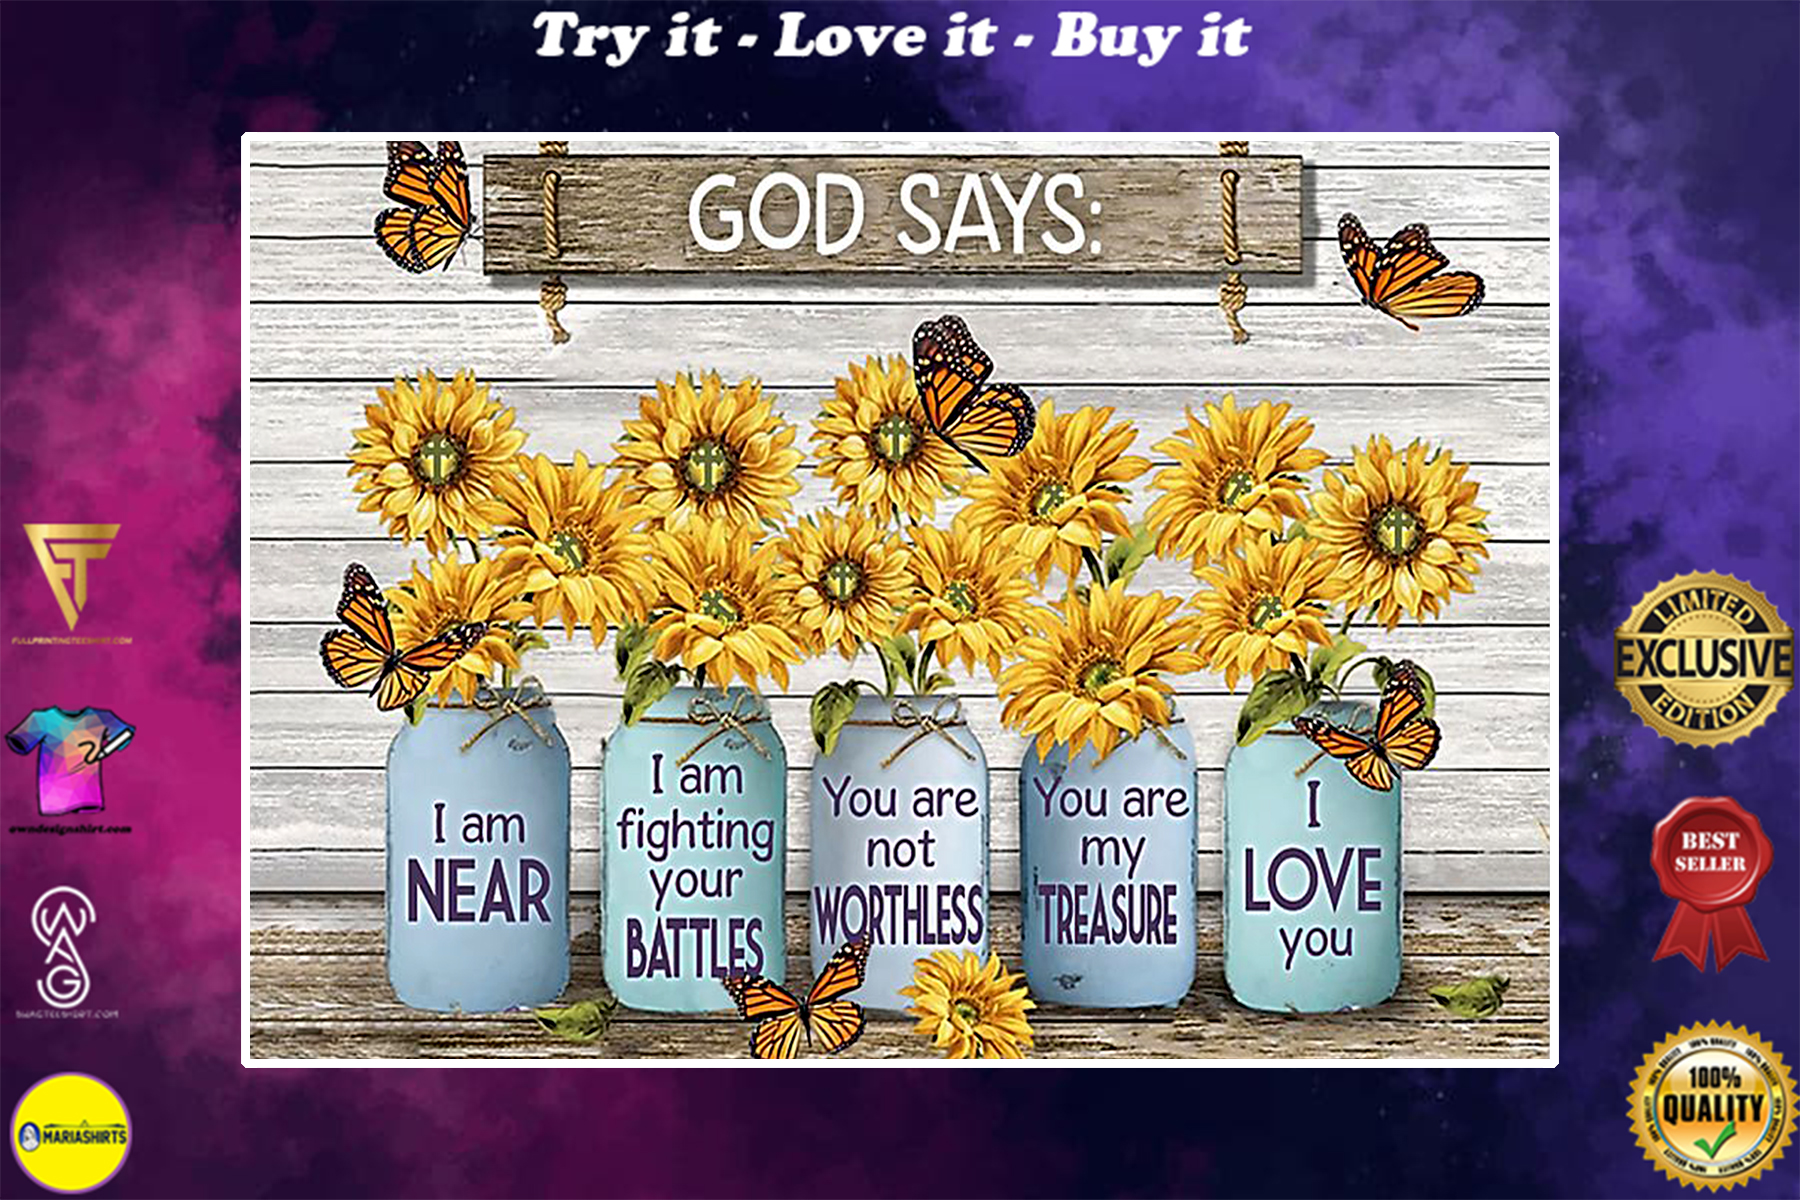 sunflower God says i am near i am fighting your battles you are nor worthless poster